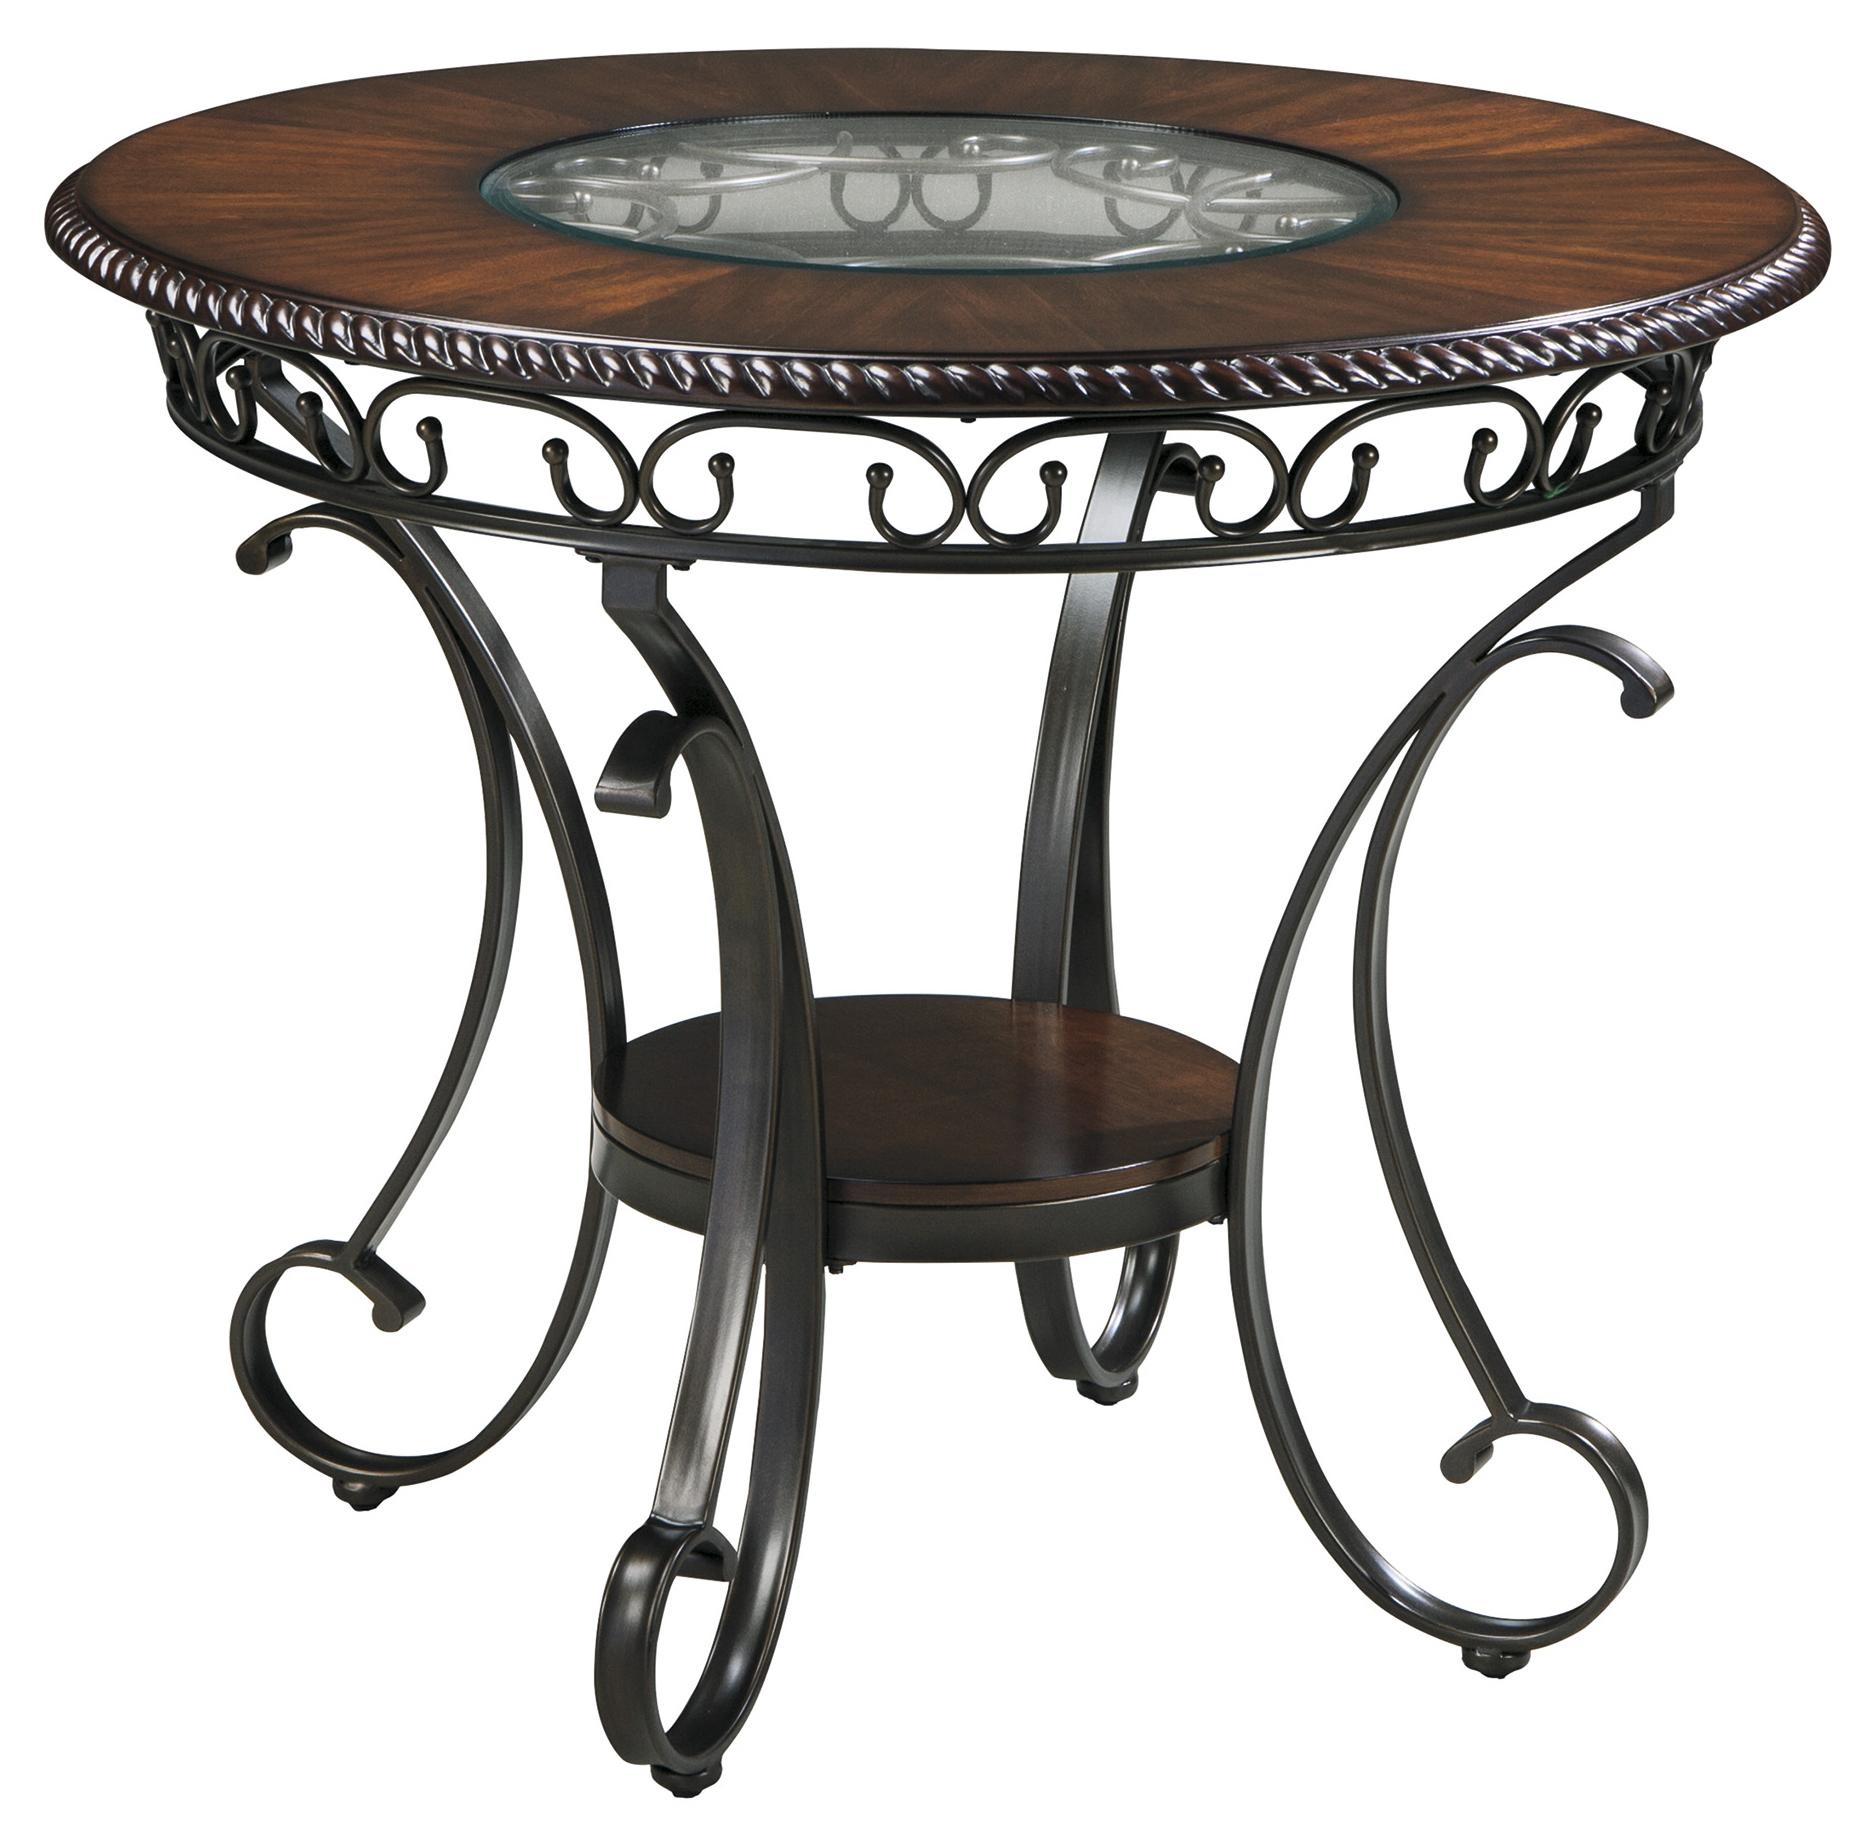 Glambrey Round Dining Room Counter Table by Signature Design by Ashley at Northeast Factory Direct